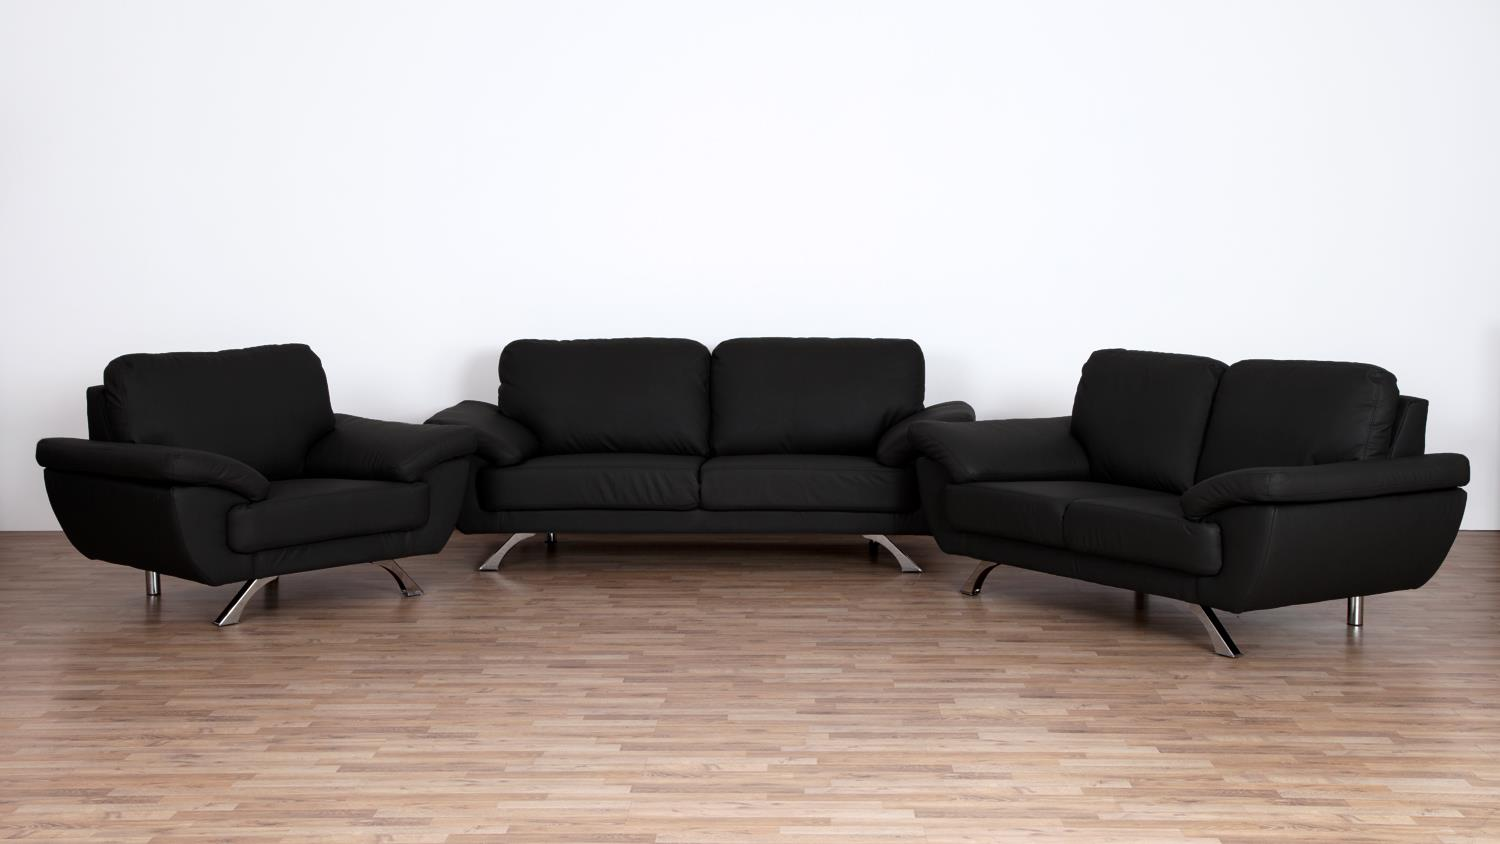 sofa gino 2 sitzer bezug in schwarz inkl nosagfederung l nge 175 cm. Black Bedroom Furniture Sets. Home Design Ideas